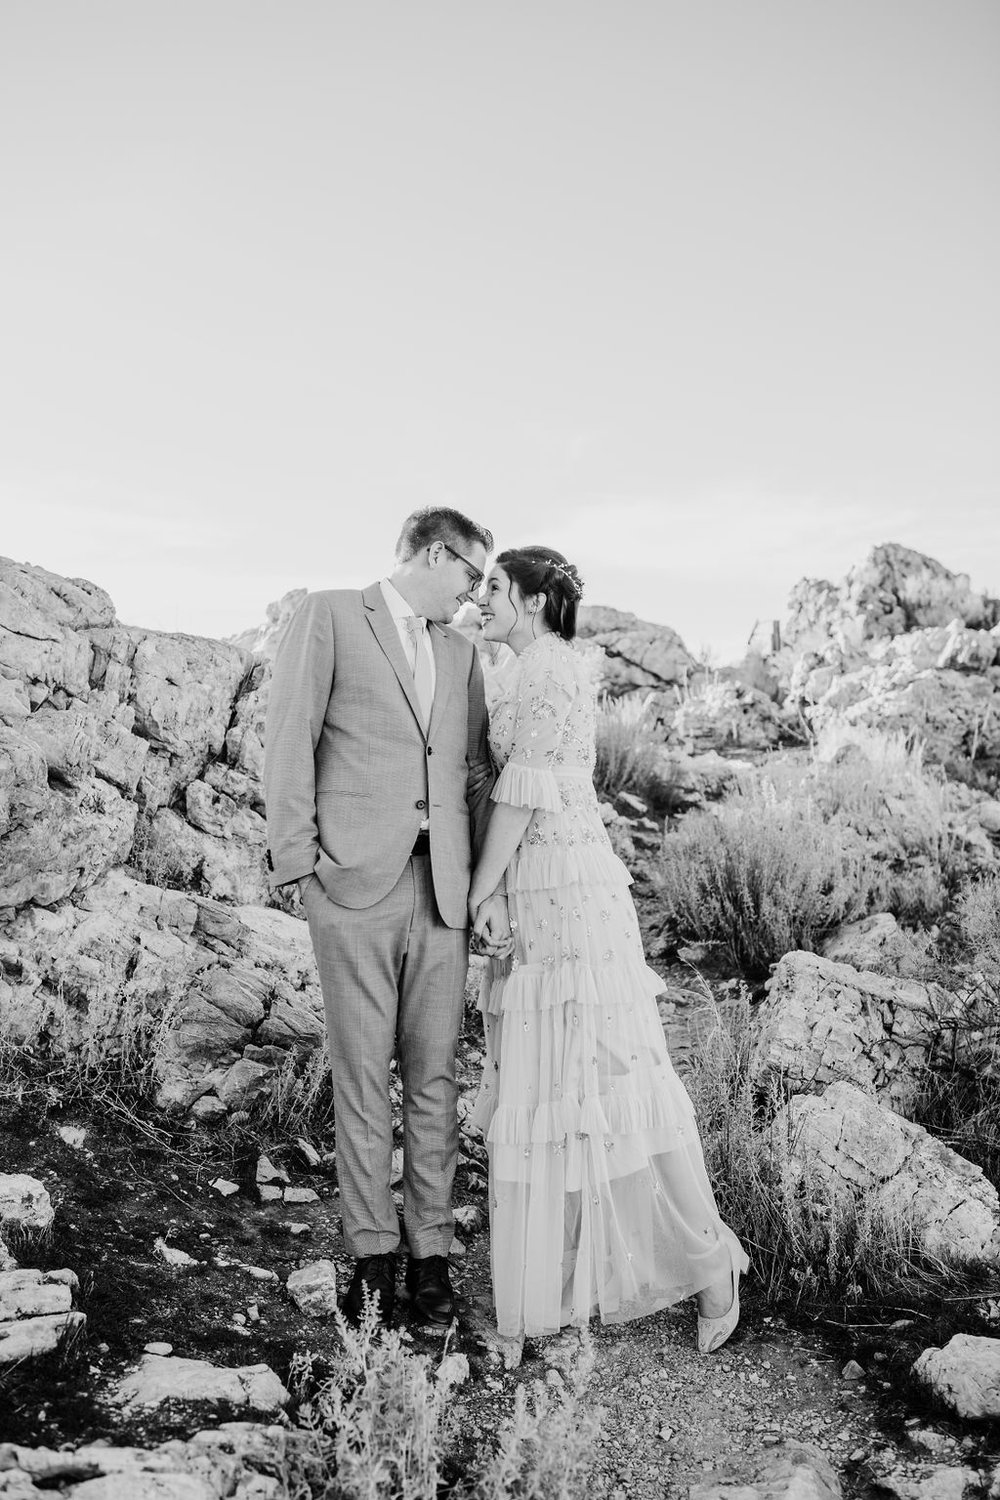 black and white formals photos romantic couple looking into each others eyes vintage wedding dress calli richards bridals wedding photography